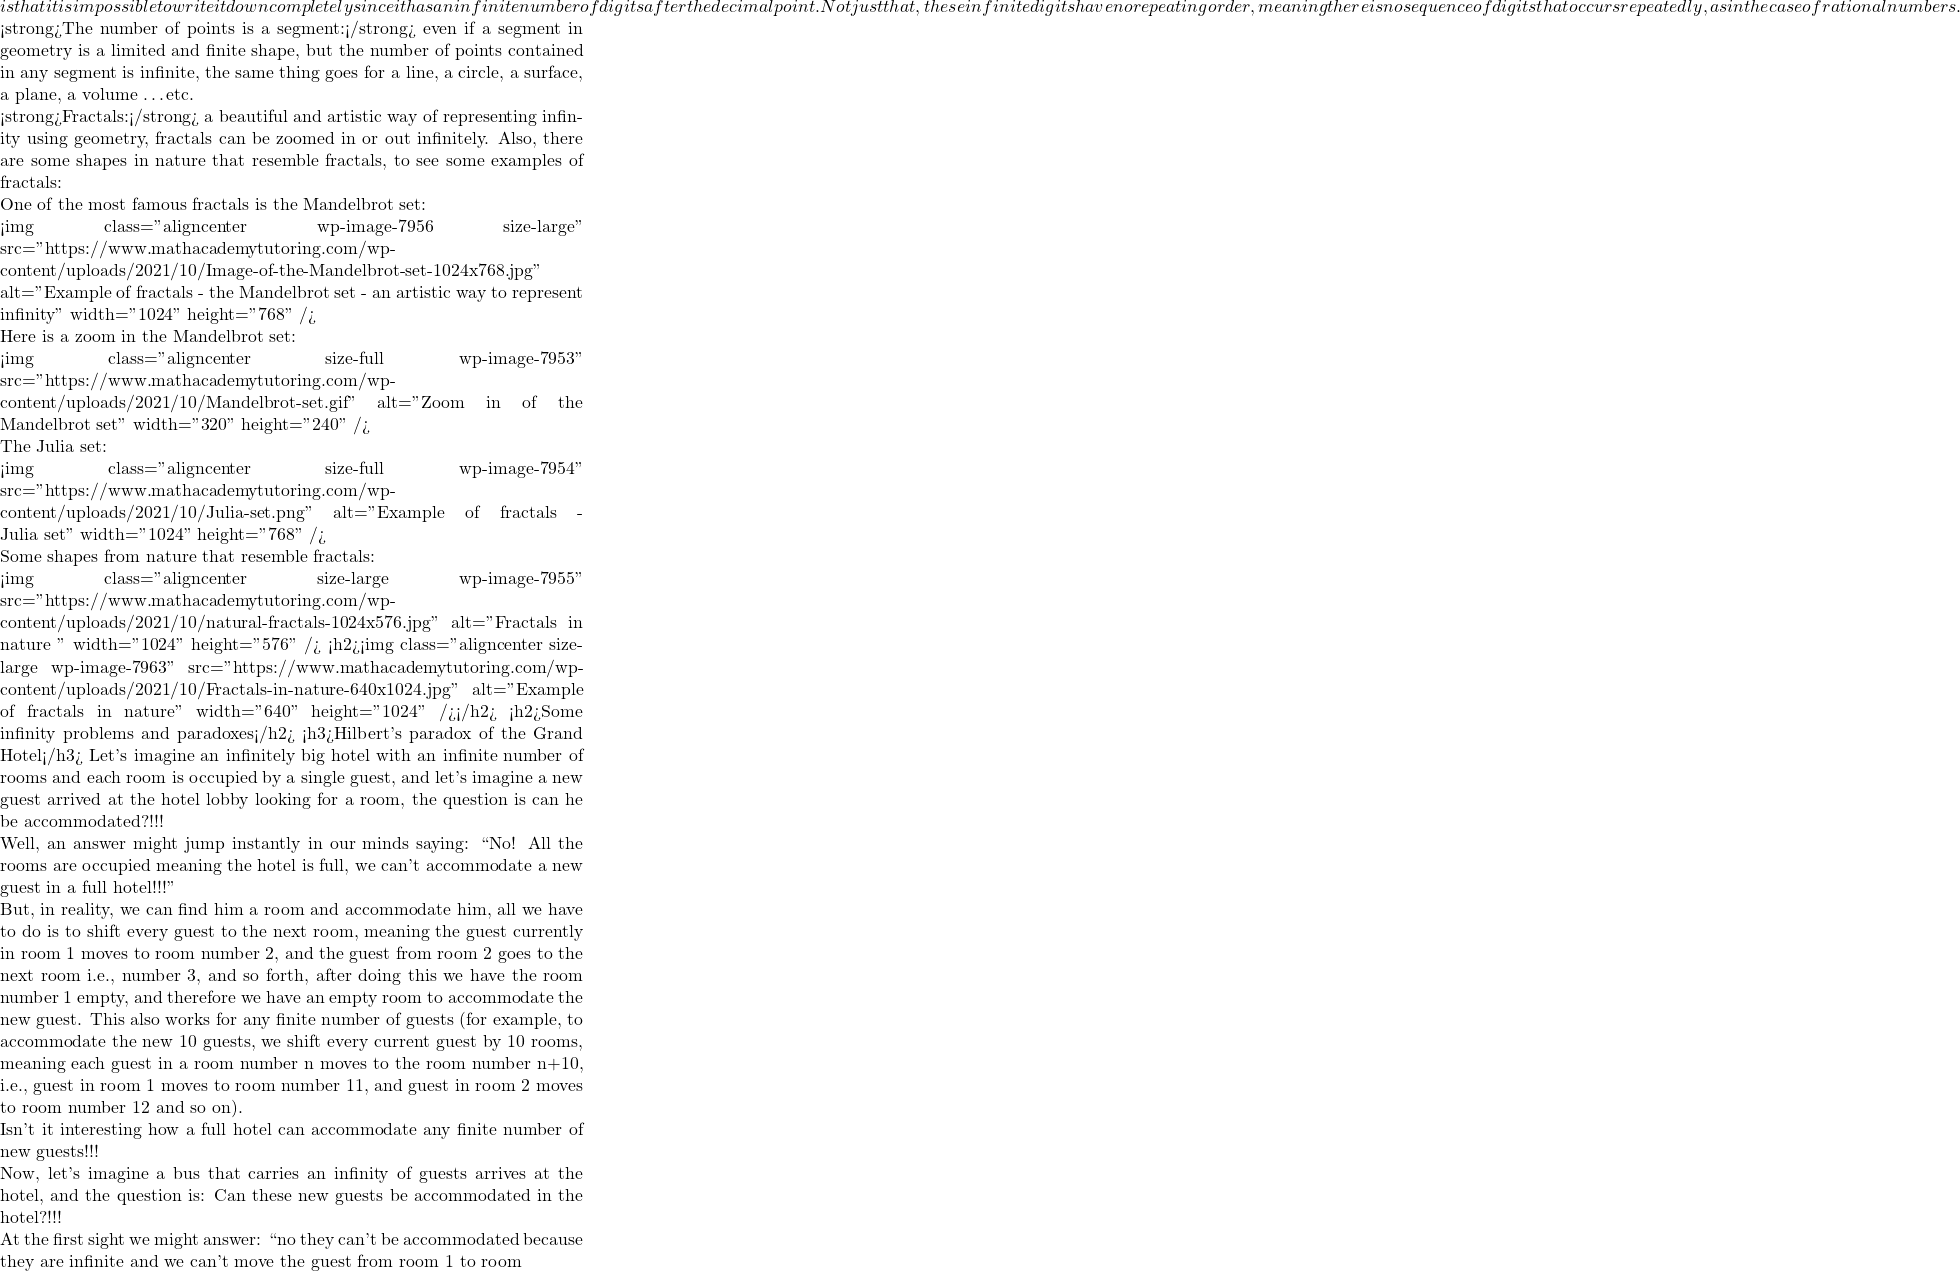 """is that it is impossible to write it down completely since it has an infinite number of digits after the decimal point. Not just that, these infinite digits have no repeating order, meaning there is no sequence of digits that occurs repeatedly, as in the case of rational numbers.  <strong>The number of points is a segment:</strong> even if a segment in geometry is a limited and finite shape, but the number of points contained in any segment is infinite, the same thing goes for a line, a circle, a surface, a plane, a volume …etc.  <strong>Fractals:</strong> a beautiful and artistic way of representing infinity using geometry, fractals can be zoomed in or out infinitely. Also, there are some shapes in nature that resemble fractals, to see some examples of fractals:  One of the most famous fractals is the Mandelbrot set:  <img class=""""aligncenter wp-image-7956 size-large"""" src=""""https://www.mathacademytutoring.com/wp-content/uploads/2021/10/Image-of-the-Mandelbrot-set-1024x768.jpg"""" alt=""""Example of fractals - the Mandelbrot set - an artistic way to represent infinity"""" width=""""1024"""" height=""""768"""" />  Here is a zoom in the Mandelbrot set:  <img class=""""aligncenter size-full wp-image-7953"""" src=""""https://www.mathacademytutoring.com/wp-content/uploads/2021/10/Mandelbrot-set.gif"""" alt=""""Zoom in of the Mandelbrot set"""" width=""""320"""" height=""""240"""" />  The Julia set:  <img class=""""aligncenter size-full wp-image-7954"""" src=""""https://www.mathacademytutoring.com/wp-content/uploads/2021/10/Julia-set.png"""" alt=""""Example of fractals - Julia set"""" width=""""1024"""" height=""""768"""" />  Some shapes from nature that resemble fractals:  <img class=""""aligncenter size-large wp-image-7955"""" src=""""https://www.mathacademytutoring.com/wp-content/uploads/2021/10/natural-fractals-1024x576.jpg"""" alt=""""Fractals in nature """" width=""""1024"""" height=""""576"""" /> <h2><img class=""""aligncenter size-large wp-image-7963"""" src=""""https://www.mathacademytutoring.com/wp-content/uploads/2021/10/Fractals-in-nature-640x1024.jpg"""" alt=""""Example of fractals in"""